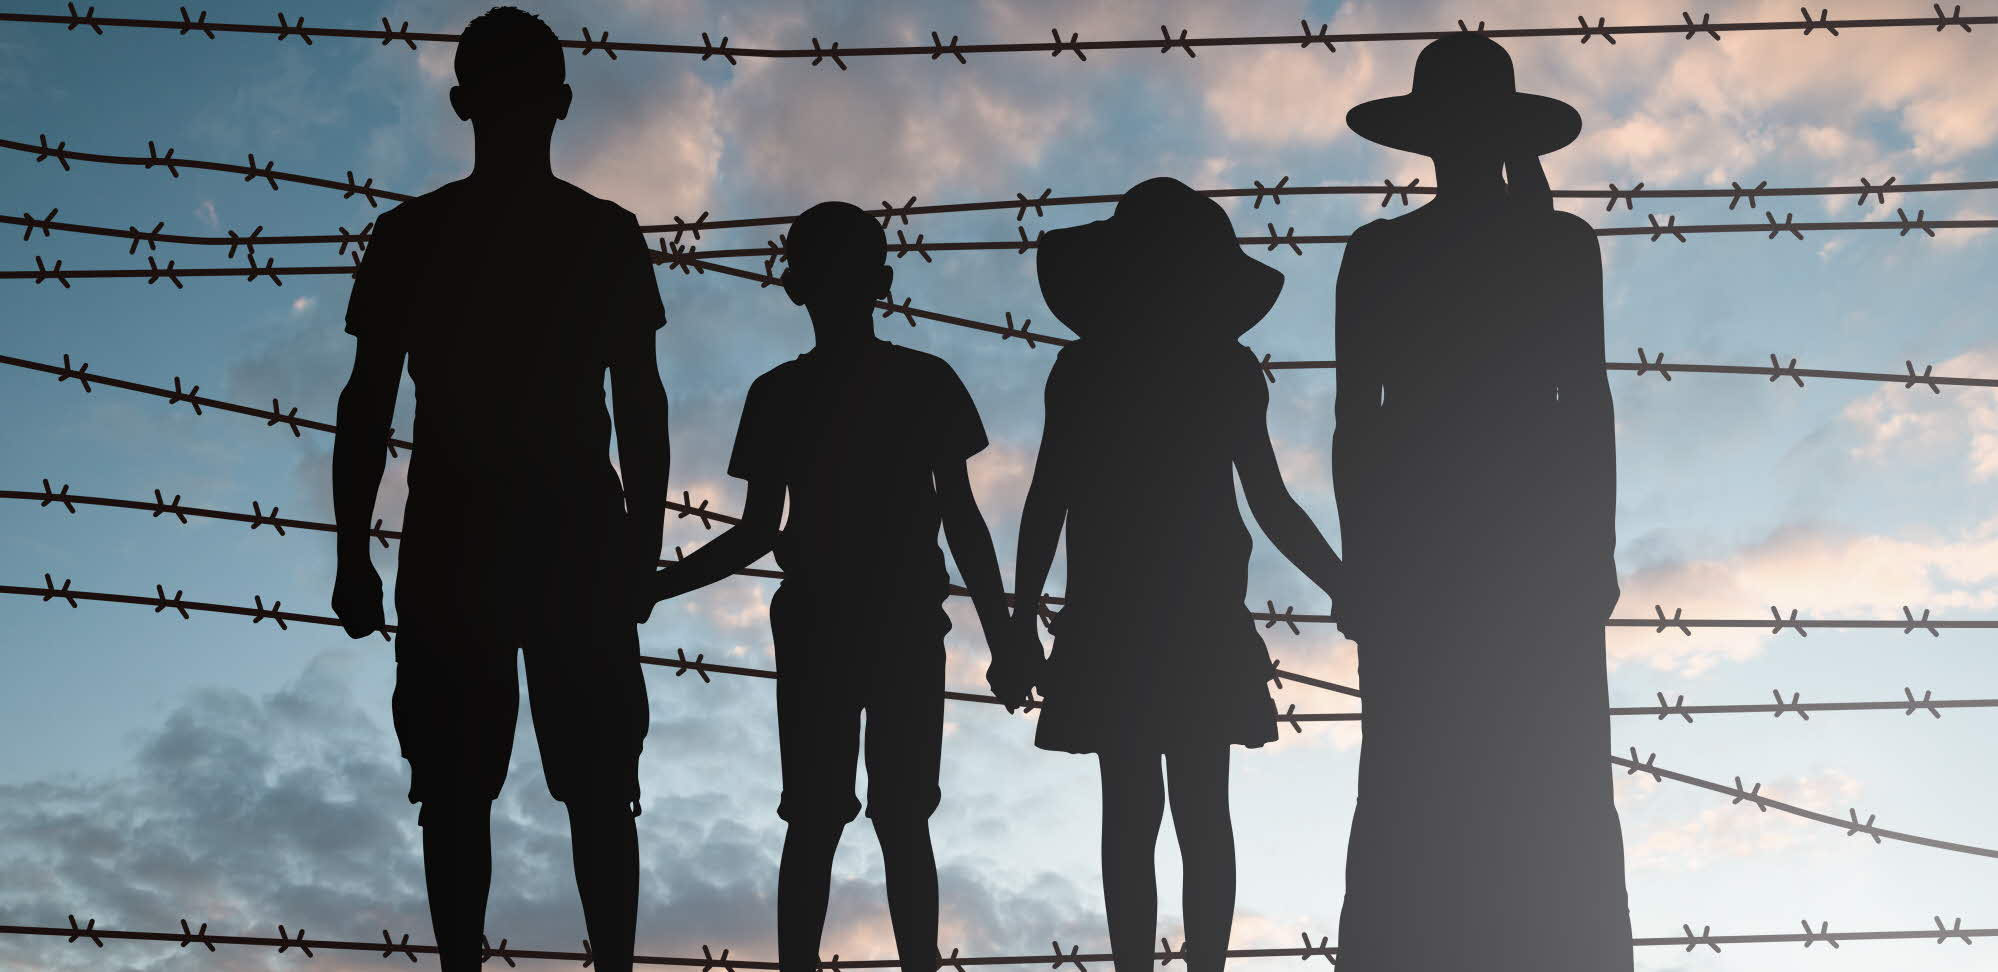 family in silhouette against barbed wire